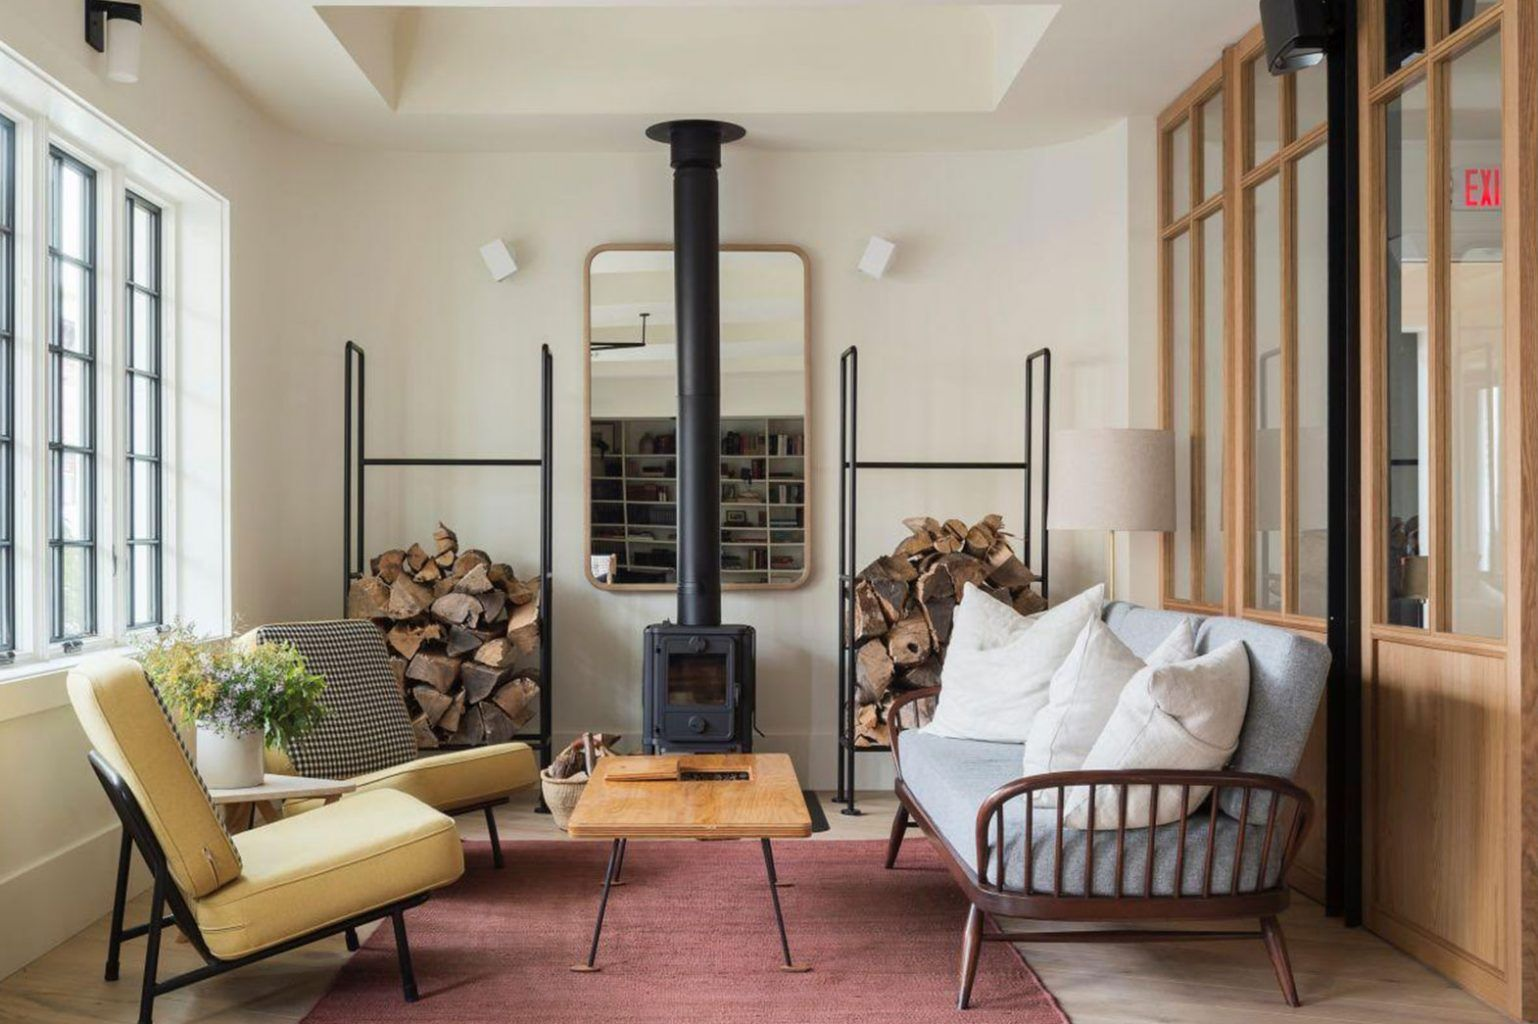 10 Hip Hotels in Upstate NY Home, Modern rustic decor